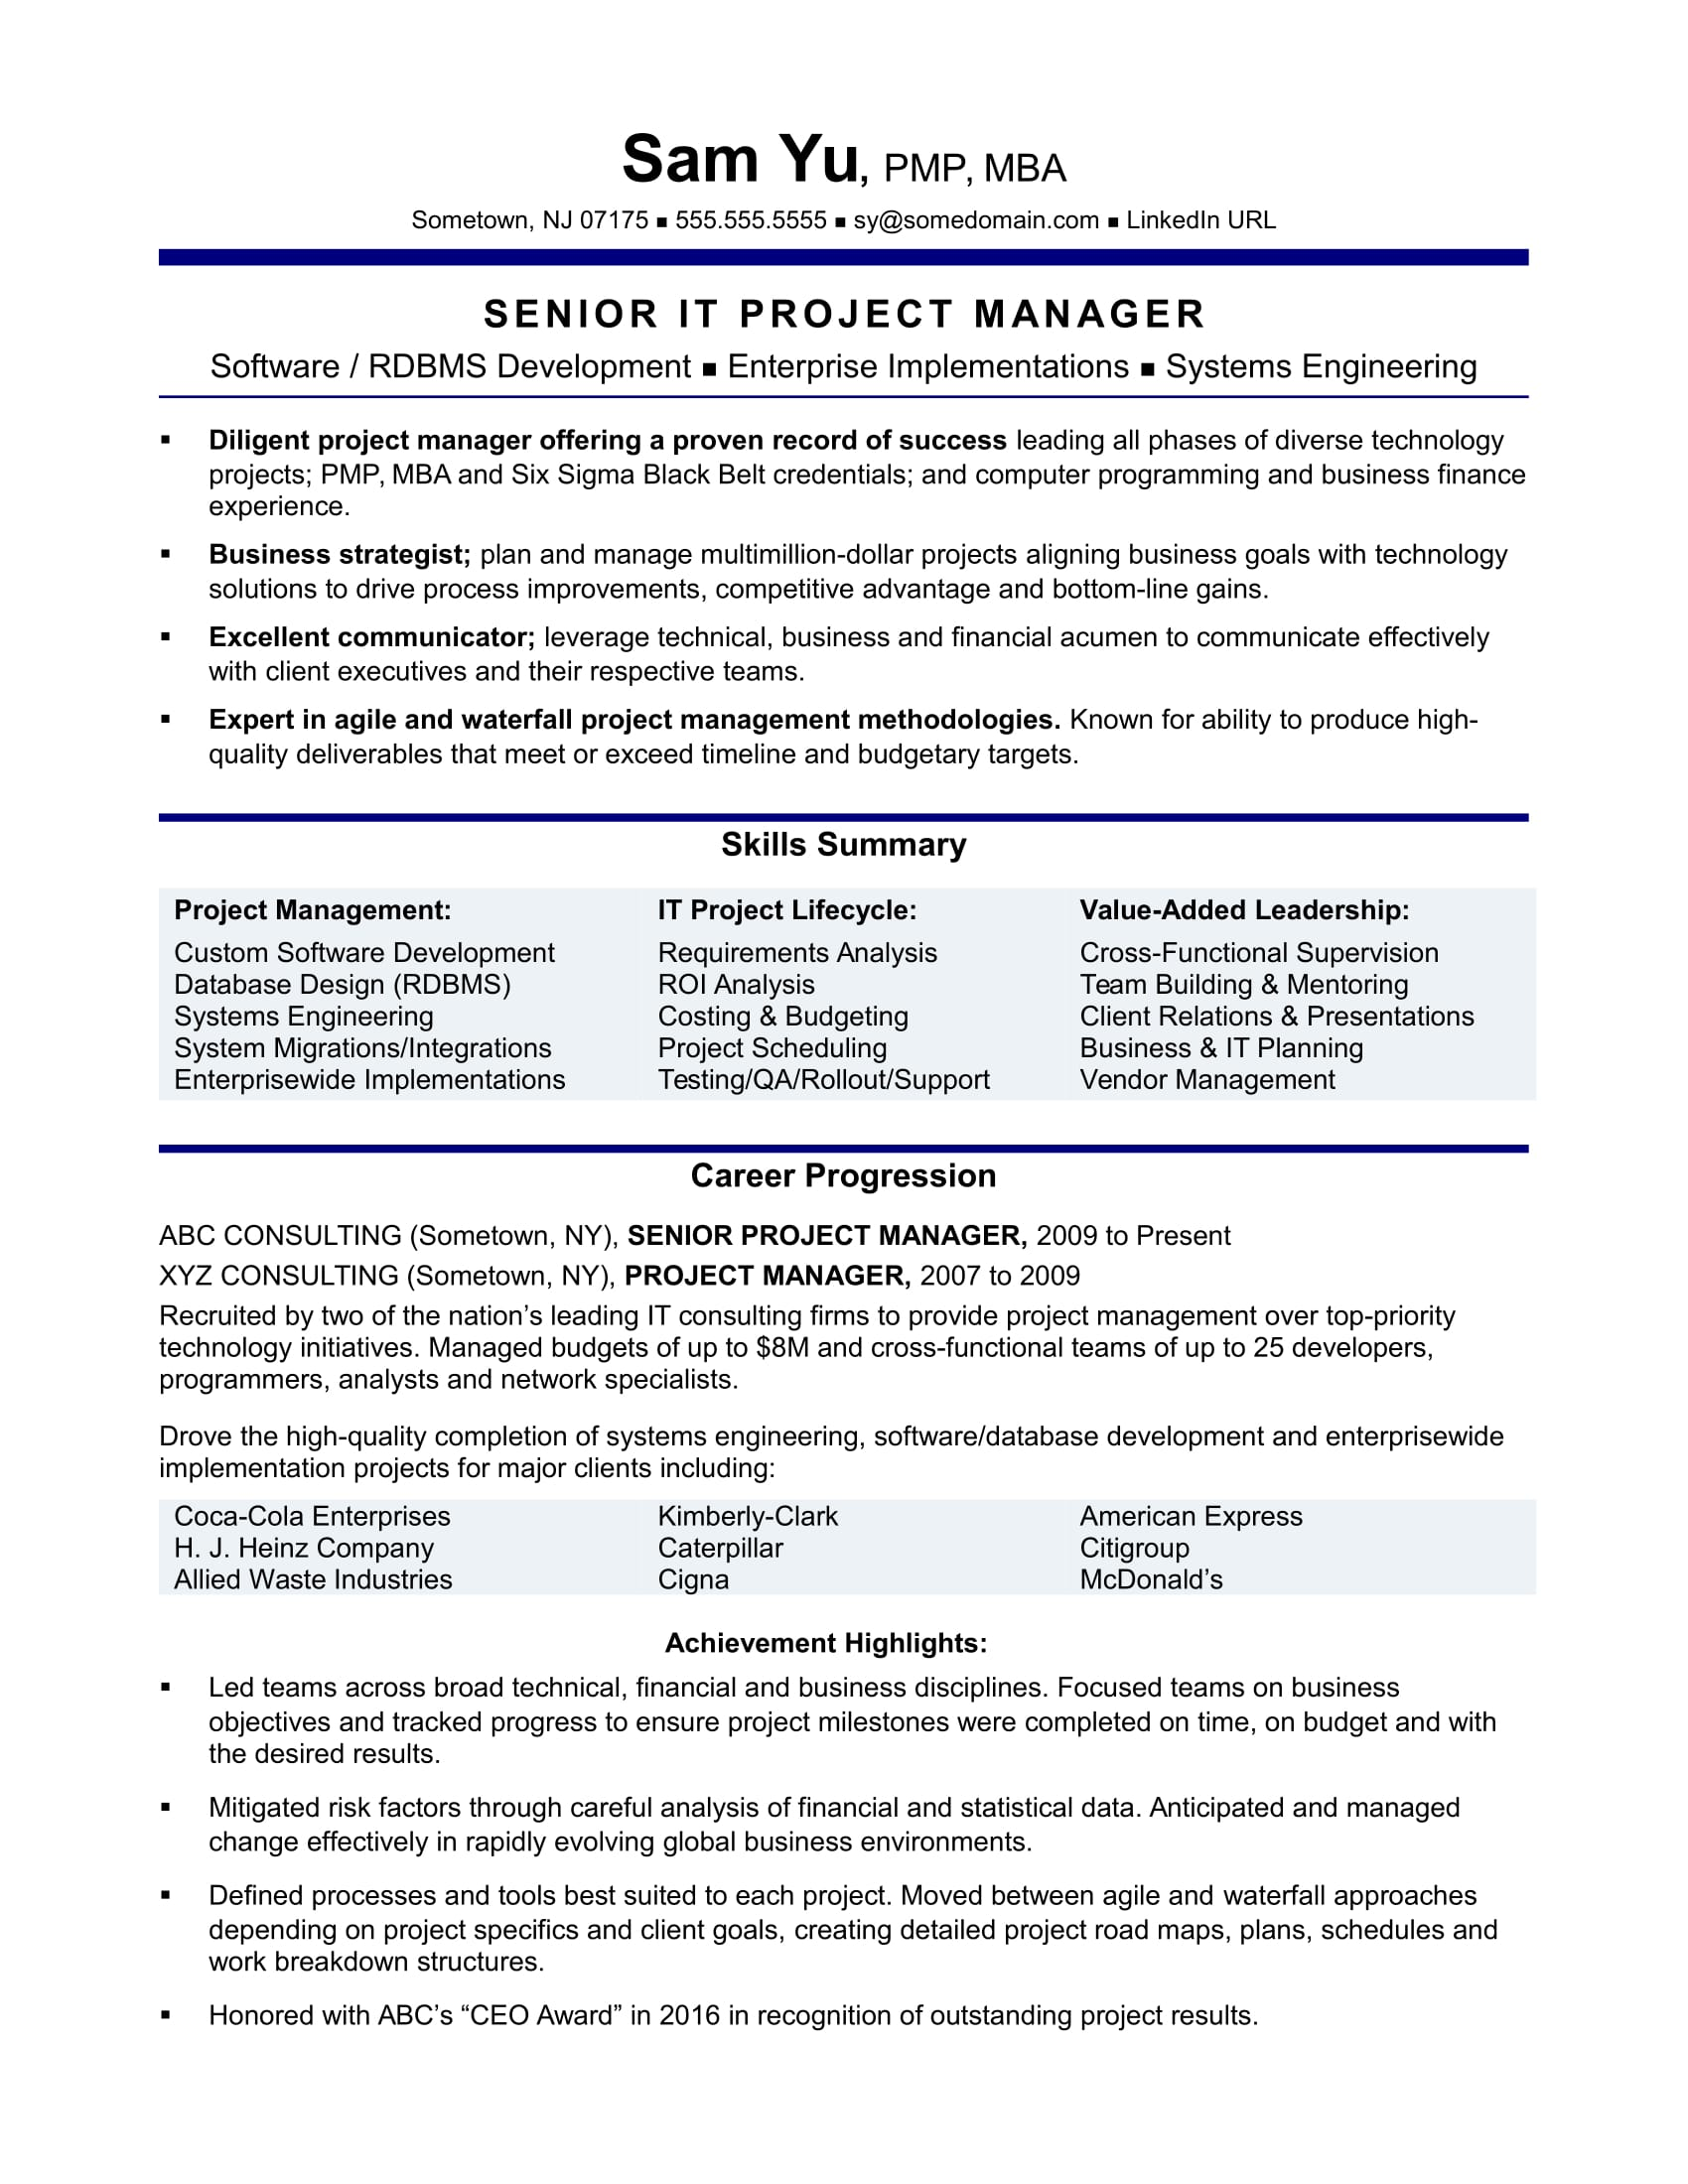 resume Resume Management Experience experienced it project manager resume sample monster com sample